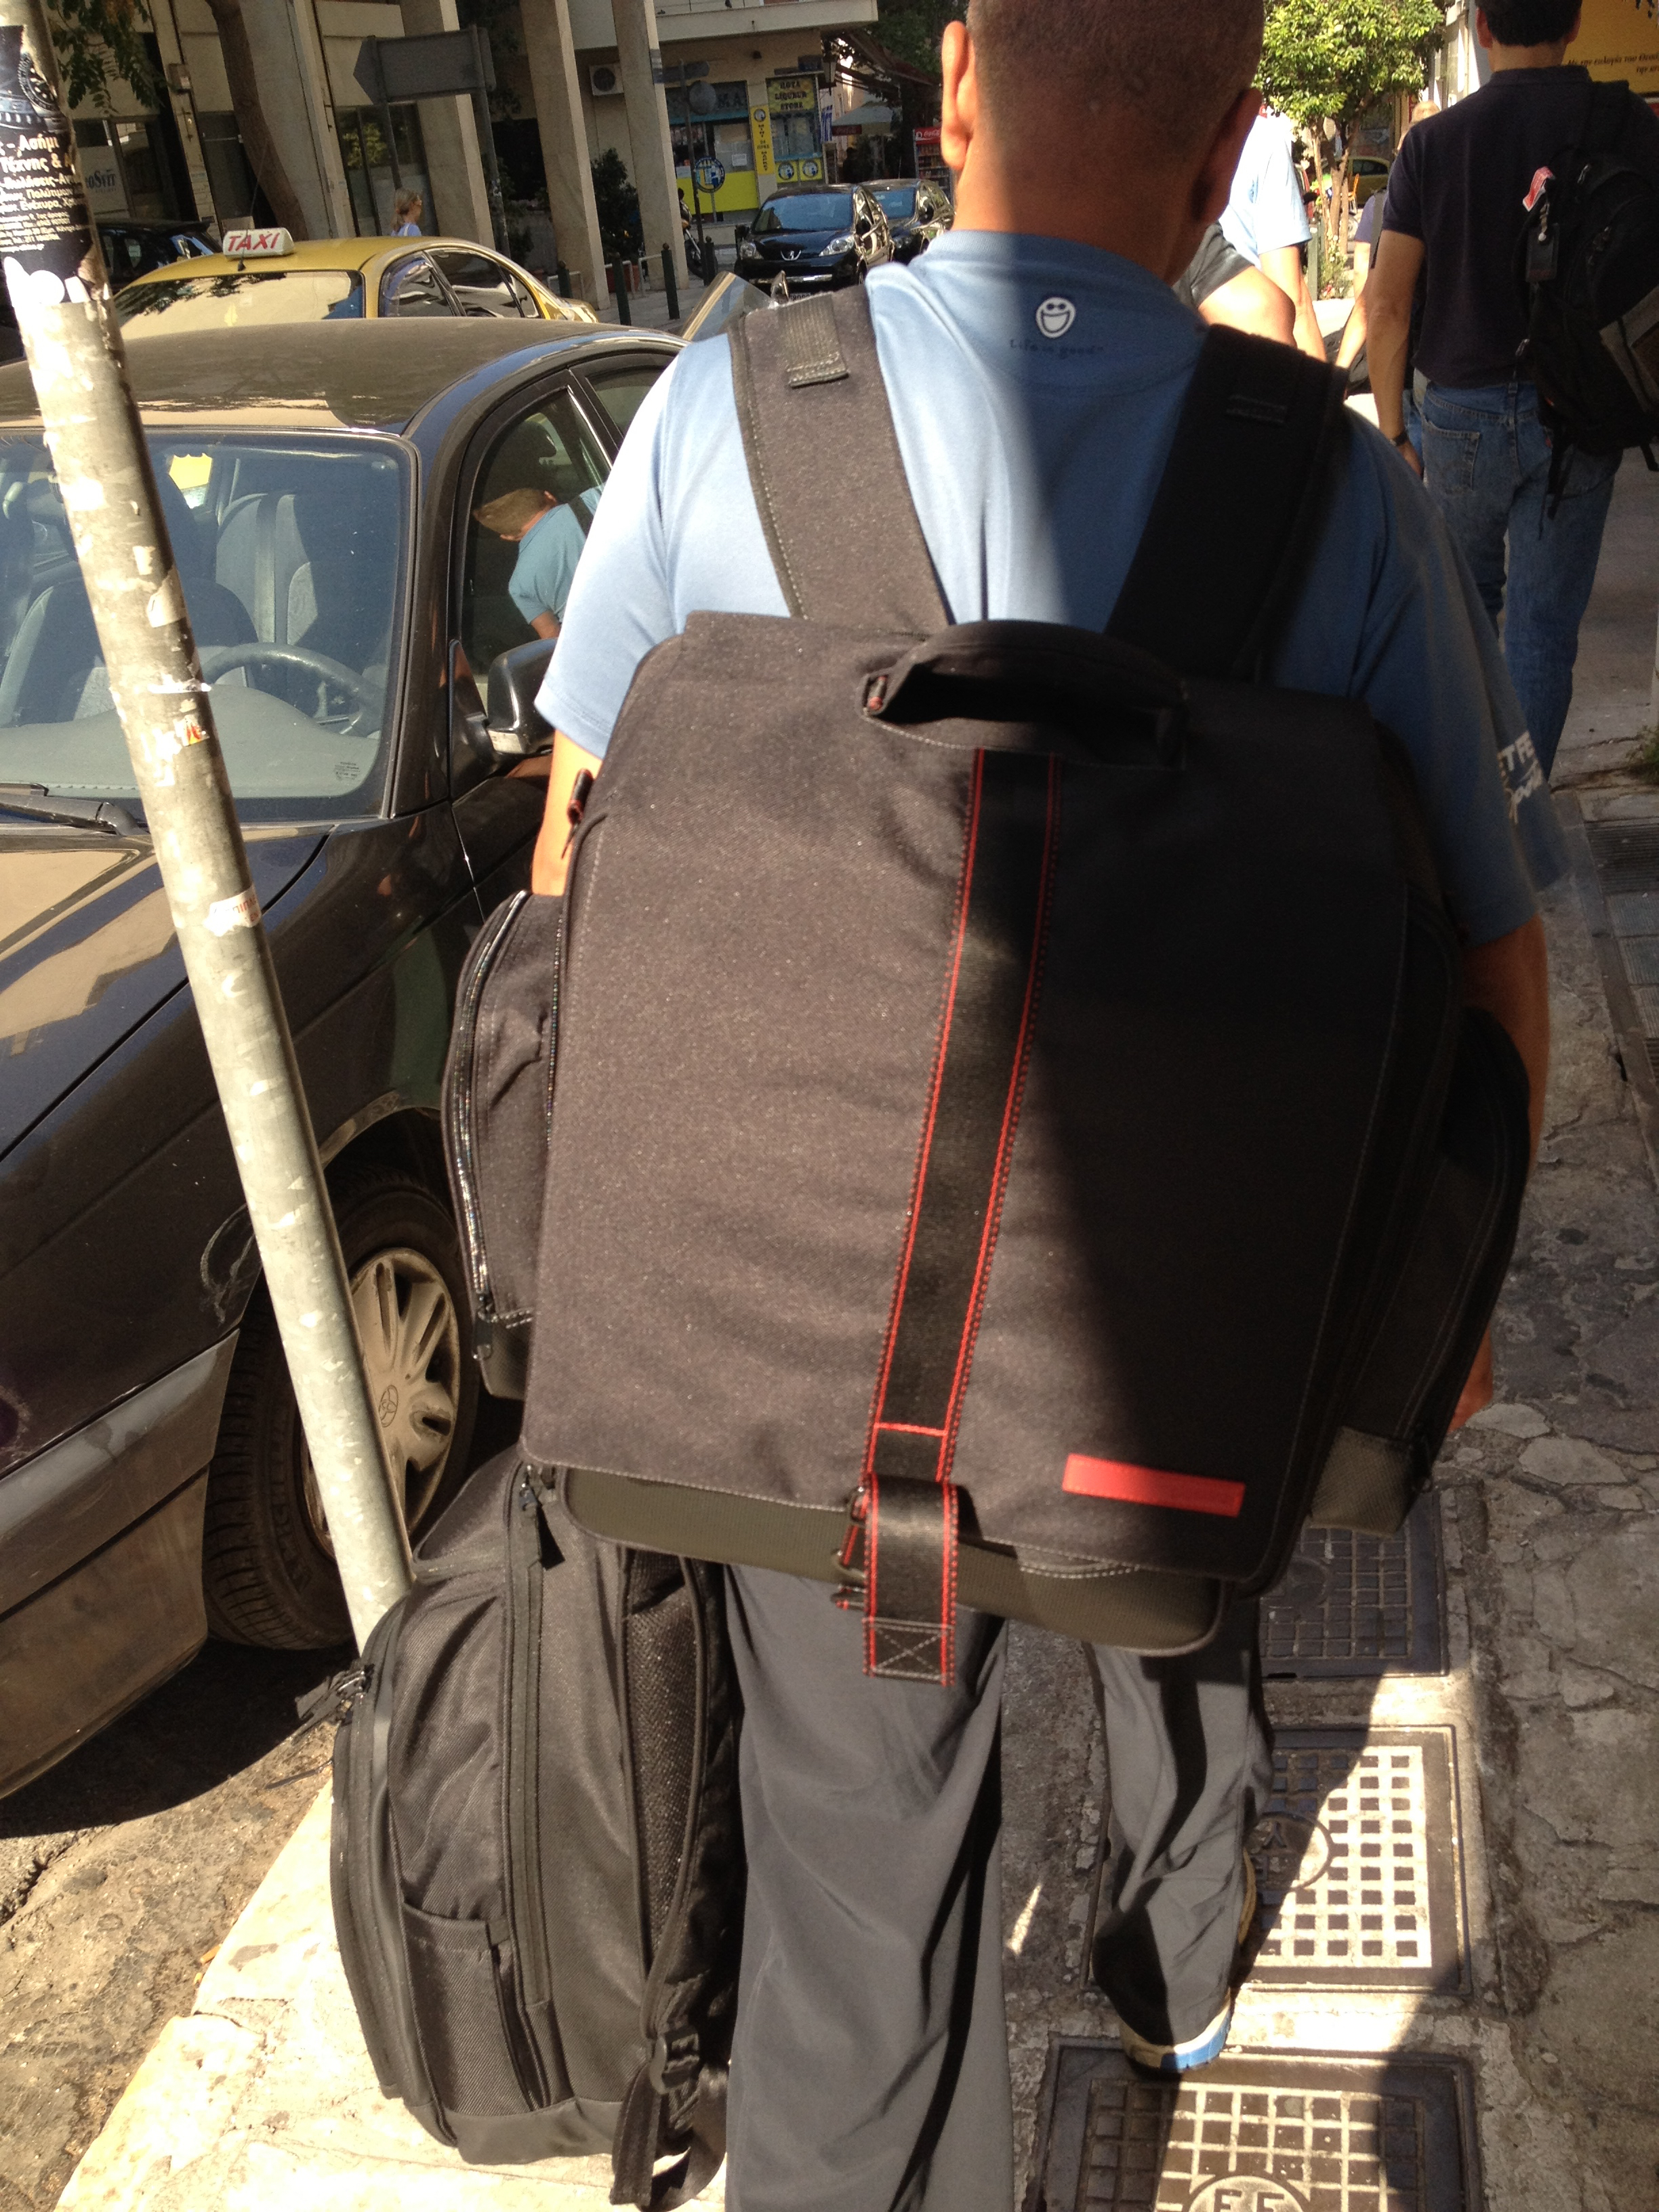 Gear in tow - Athens Greece